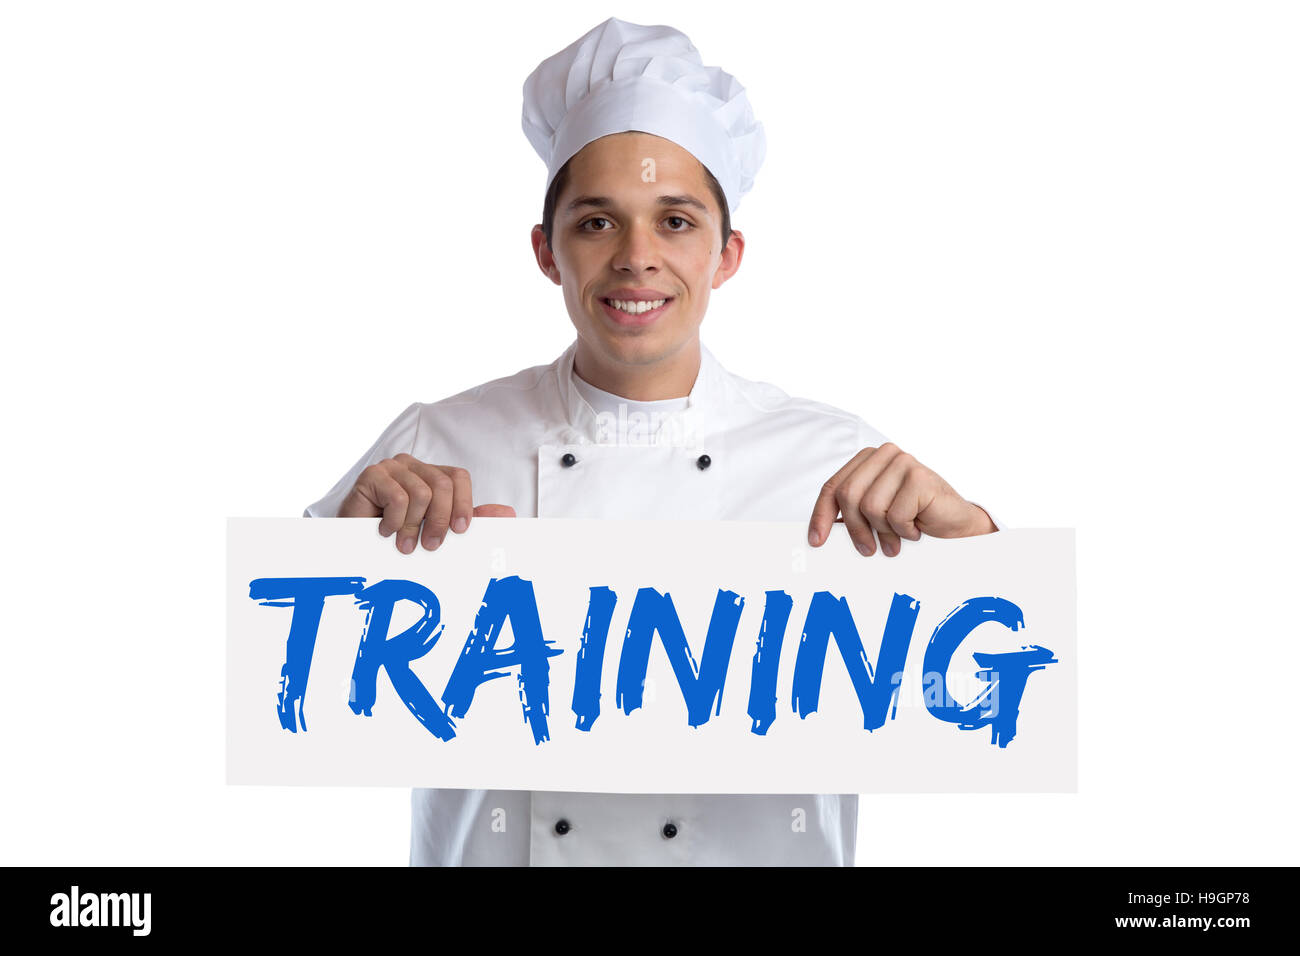 Training cook apprentice trainee cooking job isolated on a white background - Stock Image